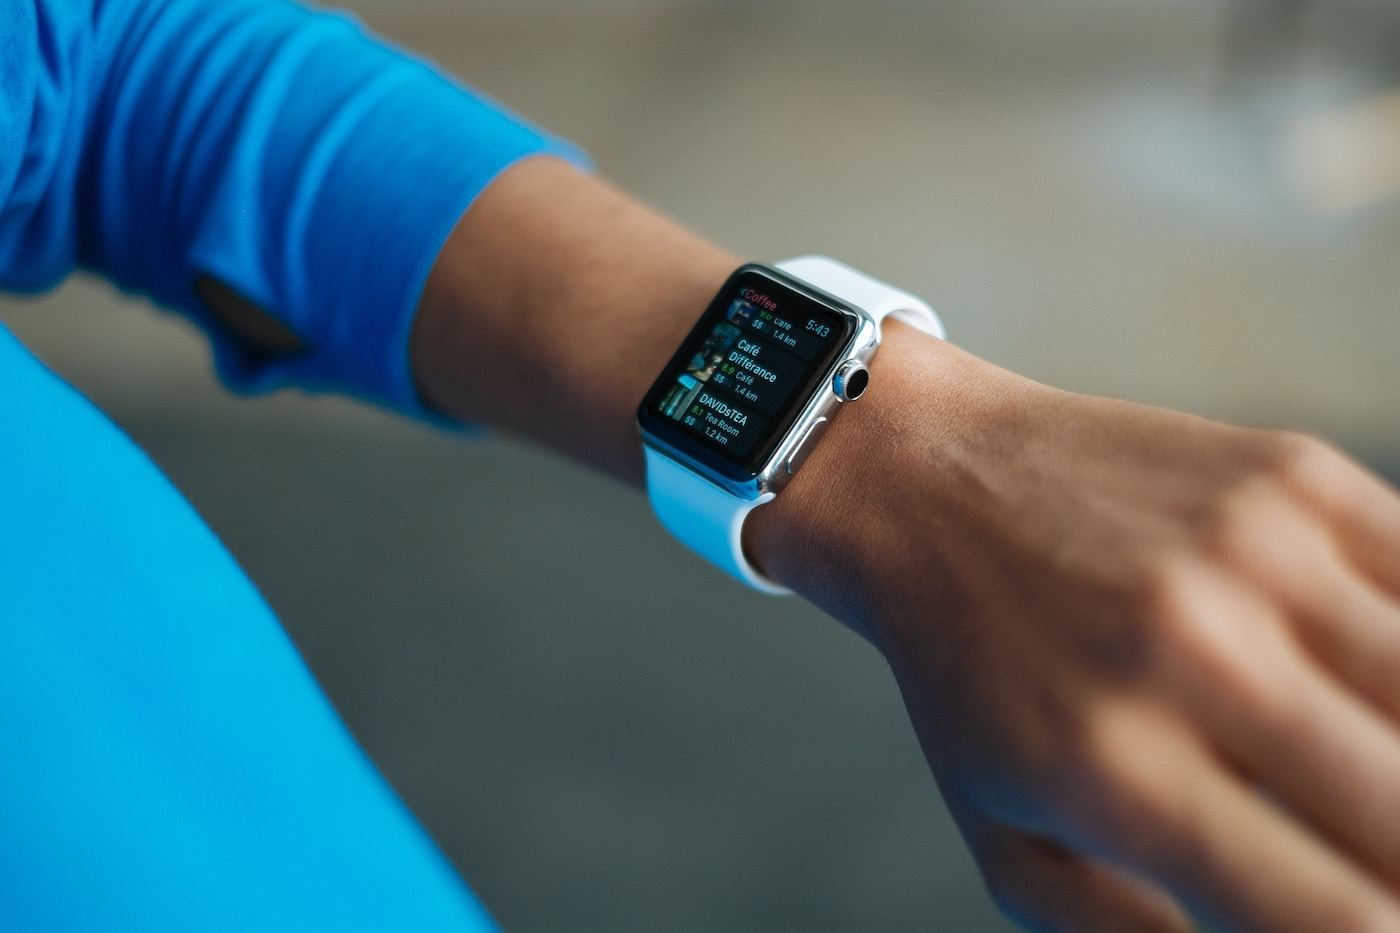 'I'm a cardiologist, and this is the one measure I want you to pay attention to on your Apple Watch'